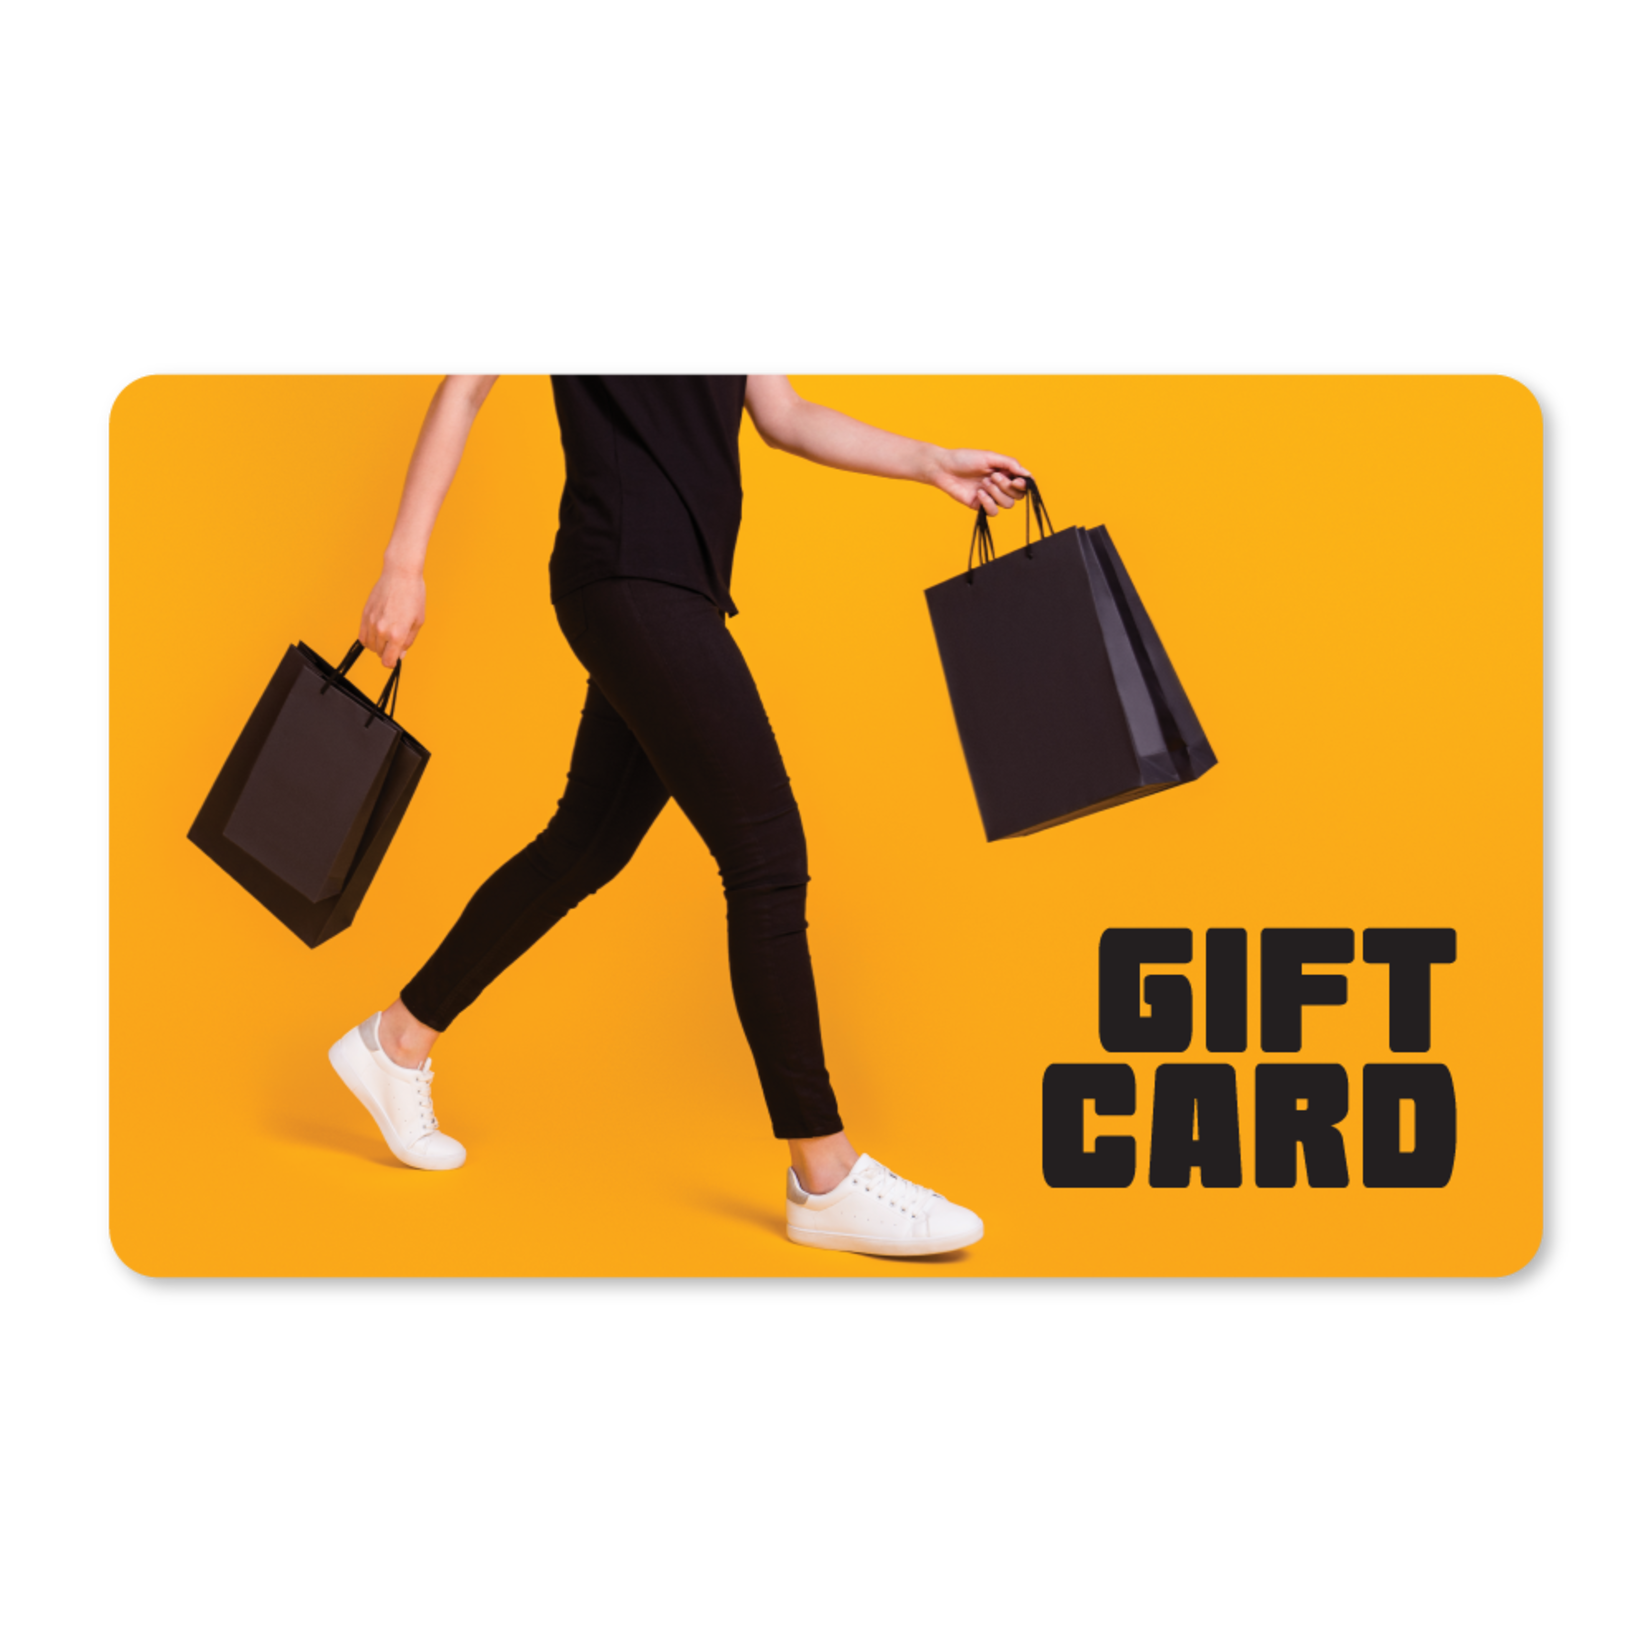 Gift Cards - Shopping